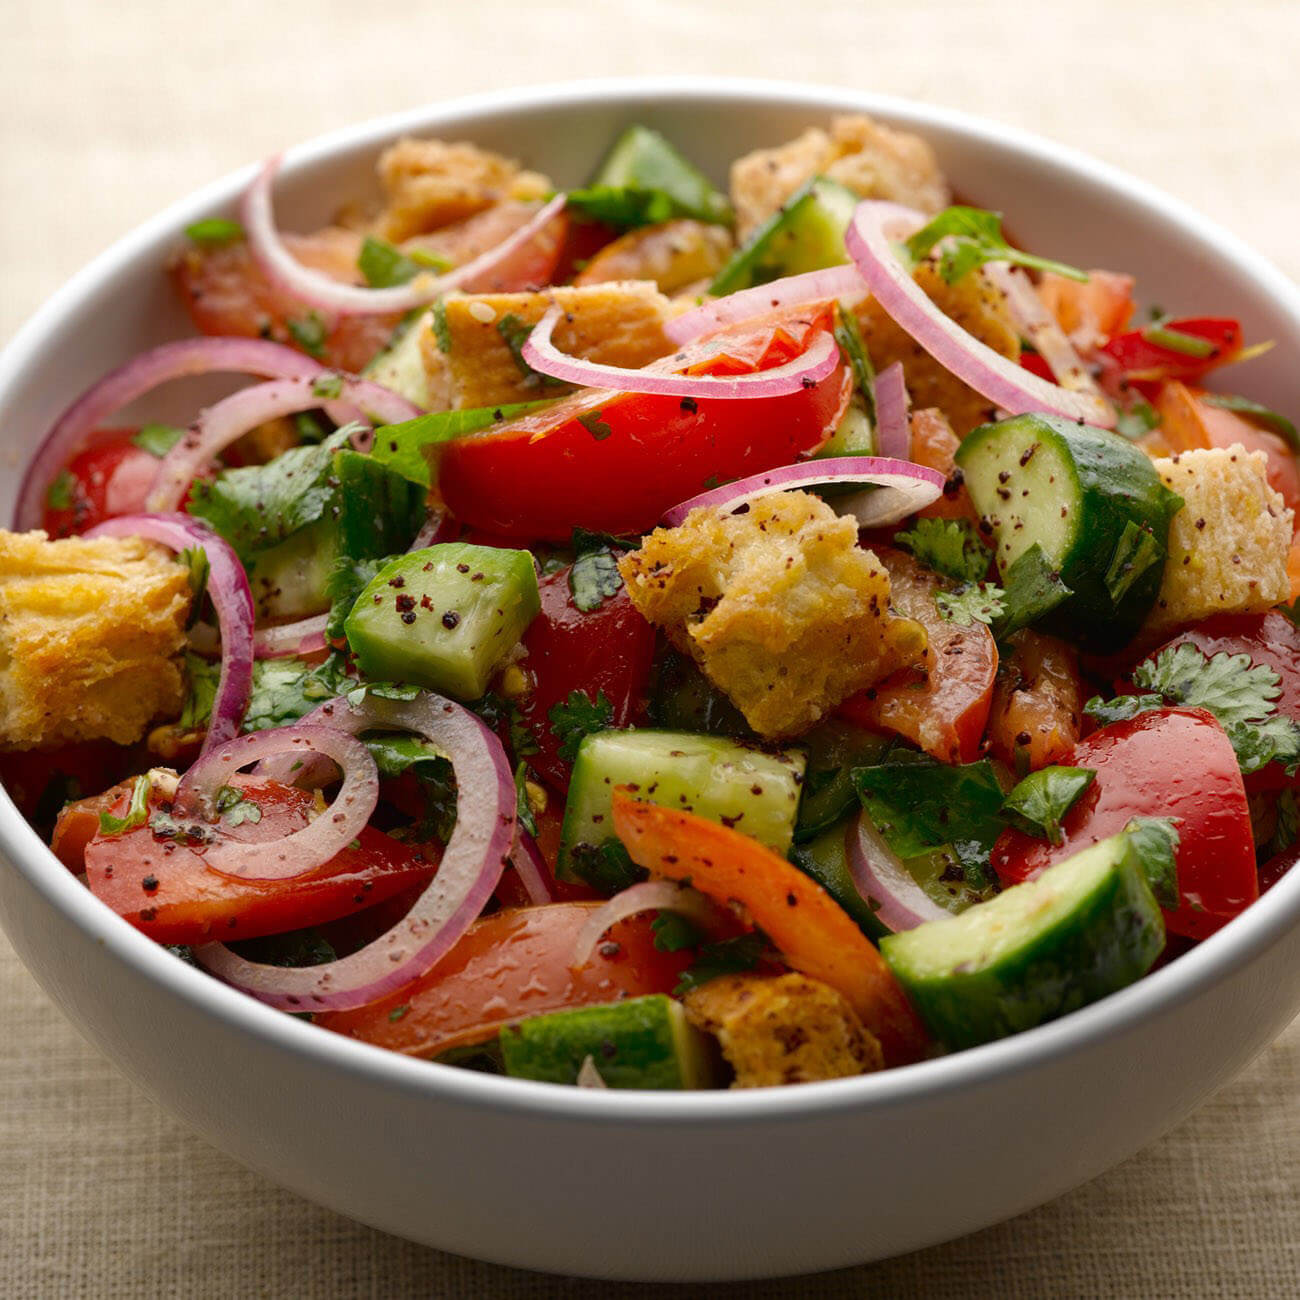 #MEATFREEMONDAY - ZESTY BREAD SALAD